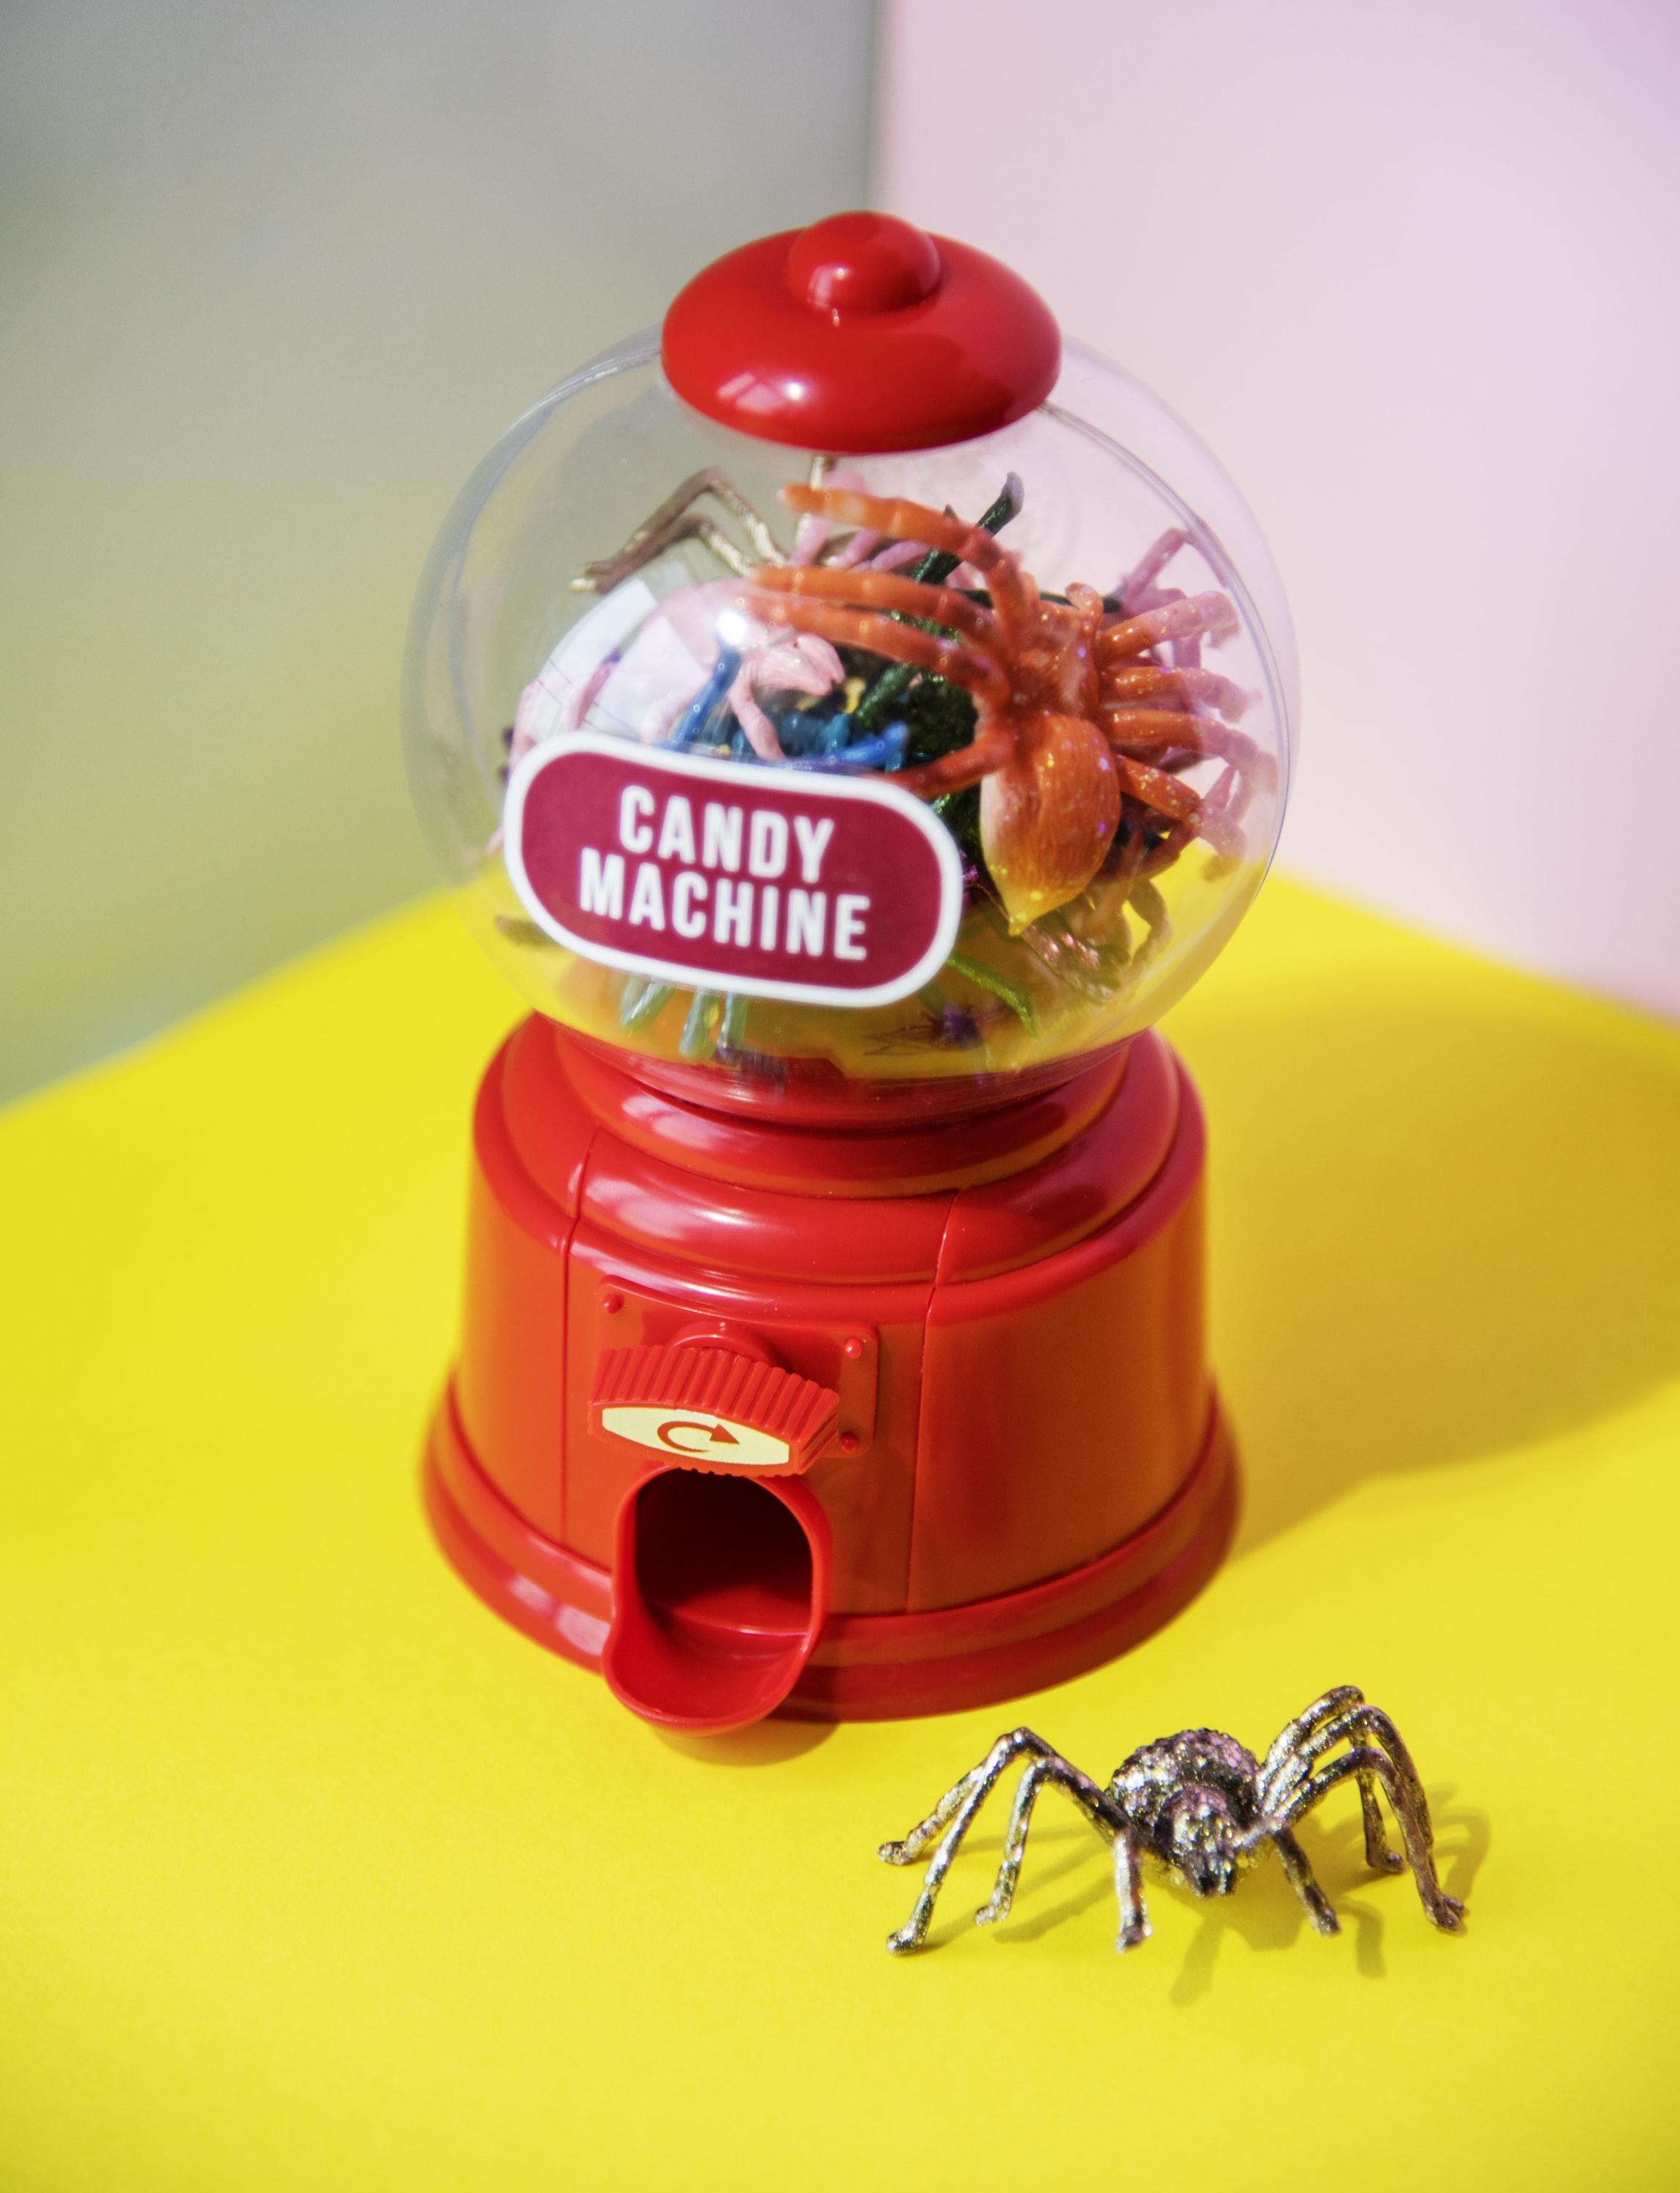 red candy machine on yellow table